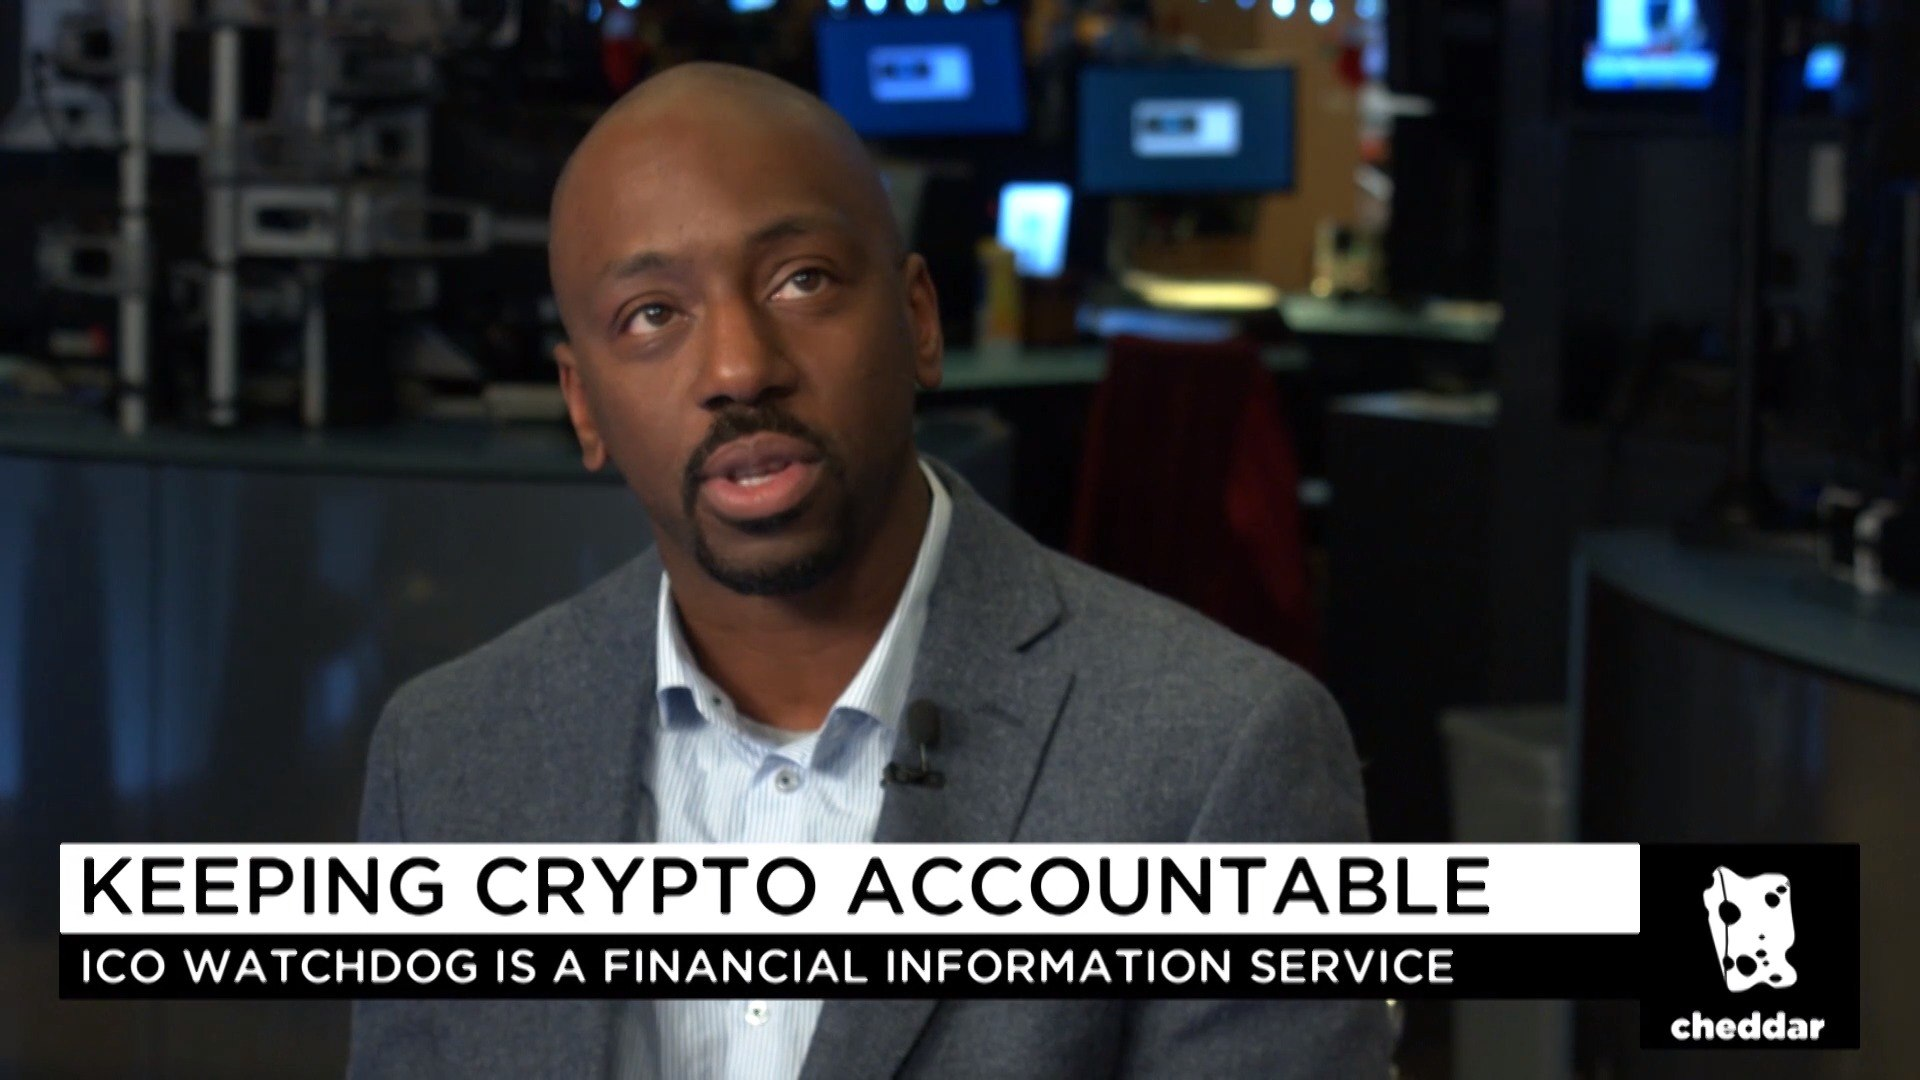 What Will Happen as Countries Issue Crypto?